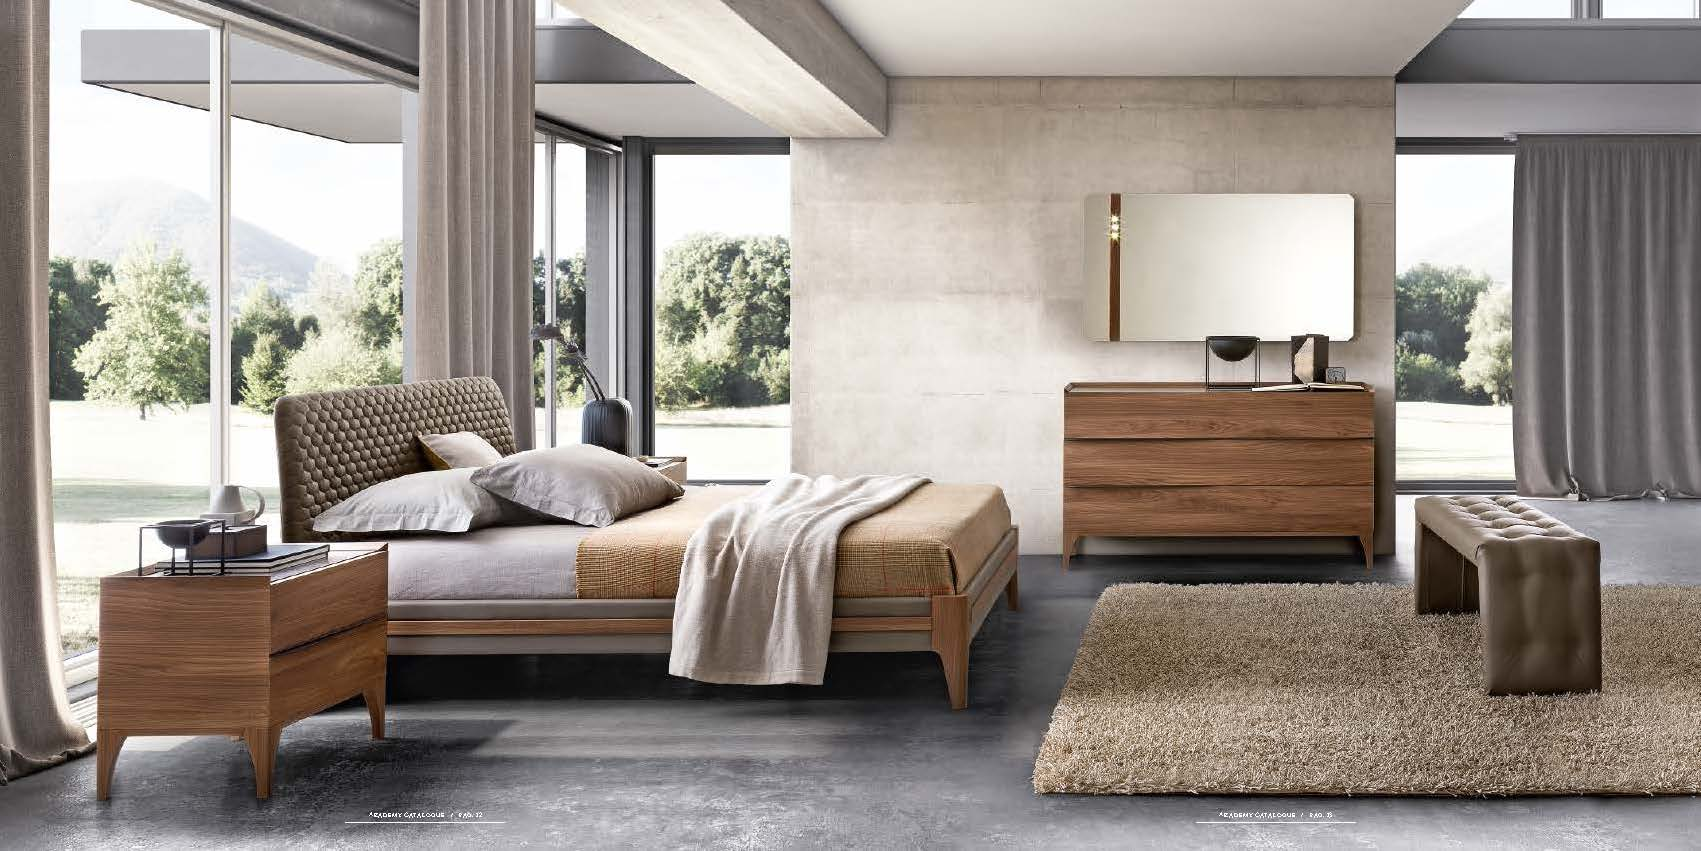 High End Modern Furniture: Made In Italy Leather Modern High End Furniture Feat Wood